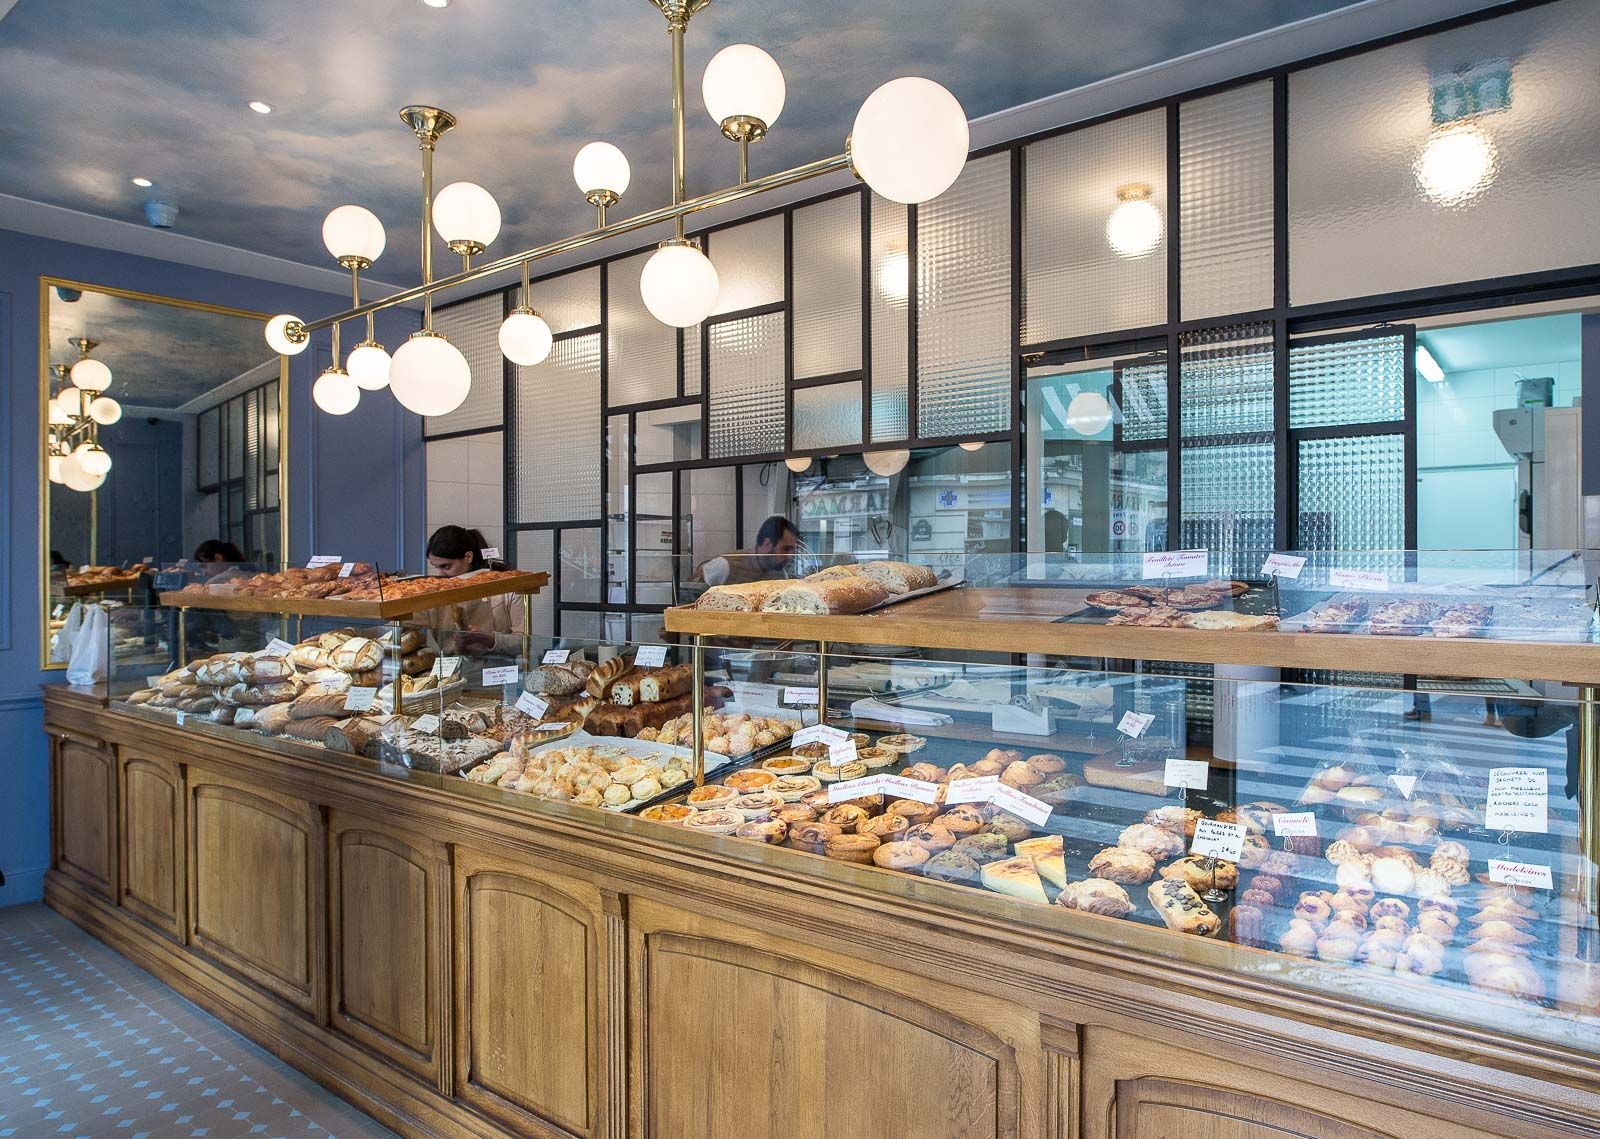 gana boulangerie architecte interieur decorateur paris